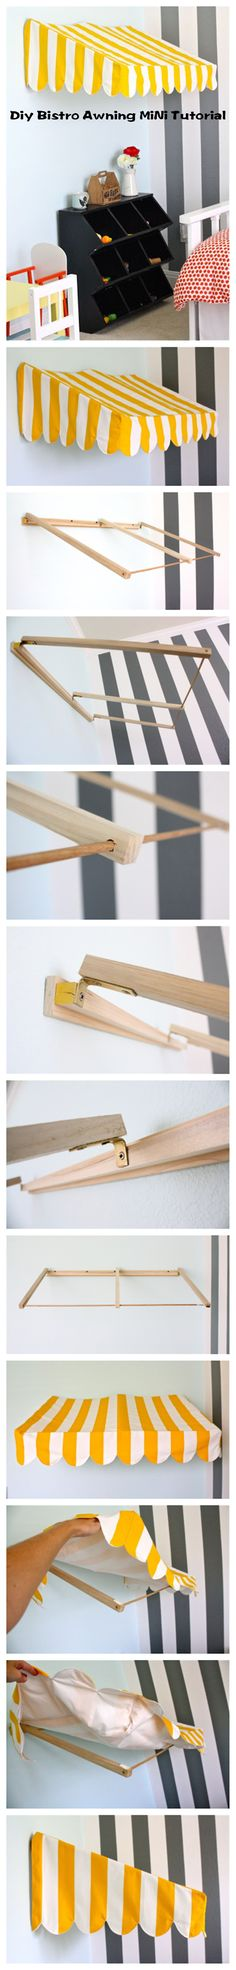 Diy Bistro Awning MiNi Tutorial We wanted it to be lightweight so it would hang easily on the wall…. Cardboard Dollhouse, Diy Cardboard, Diy Dollhouse, Dollhouse Furniture, Barbie Furniture Tutorial, Diy Awning, Cute Furniture, Christmas Program, Barbie House